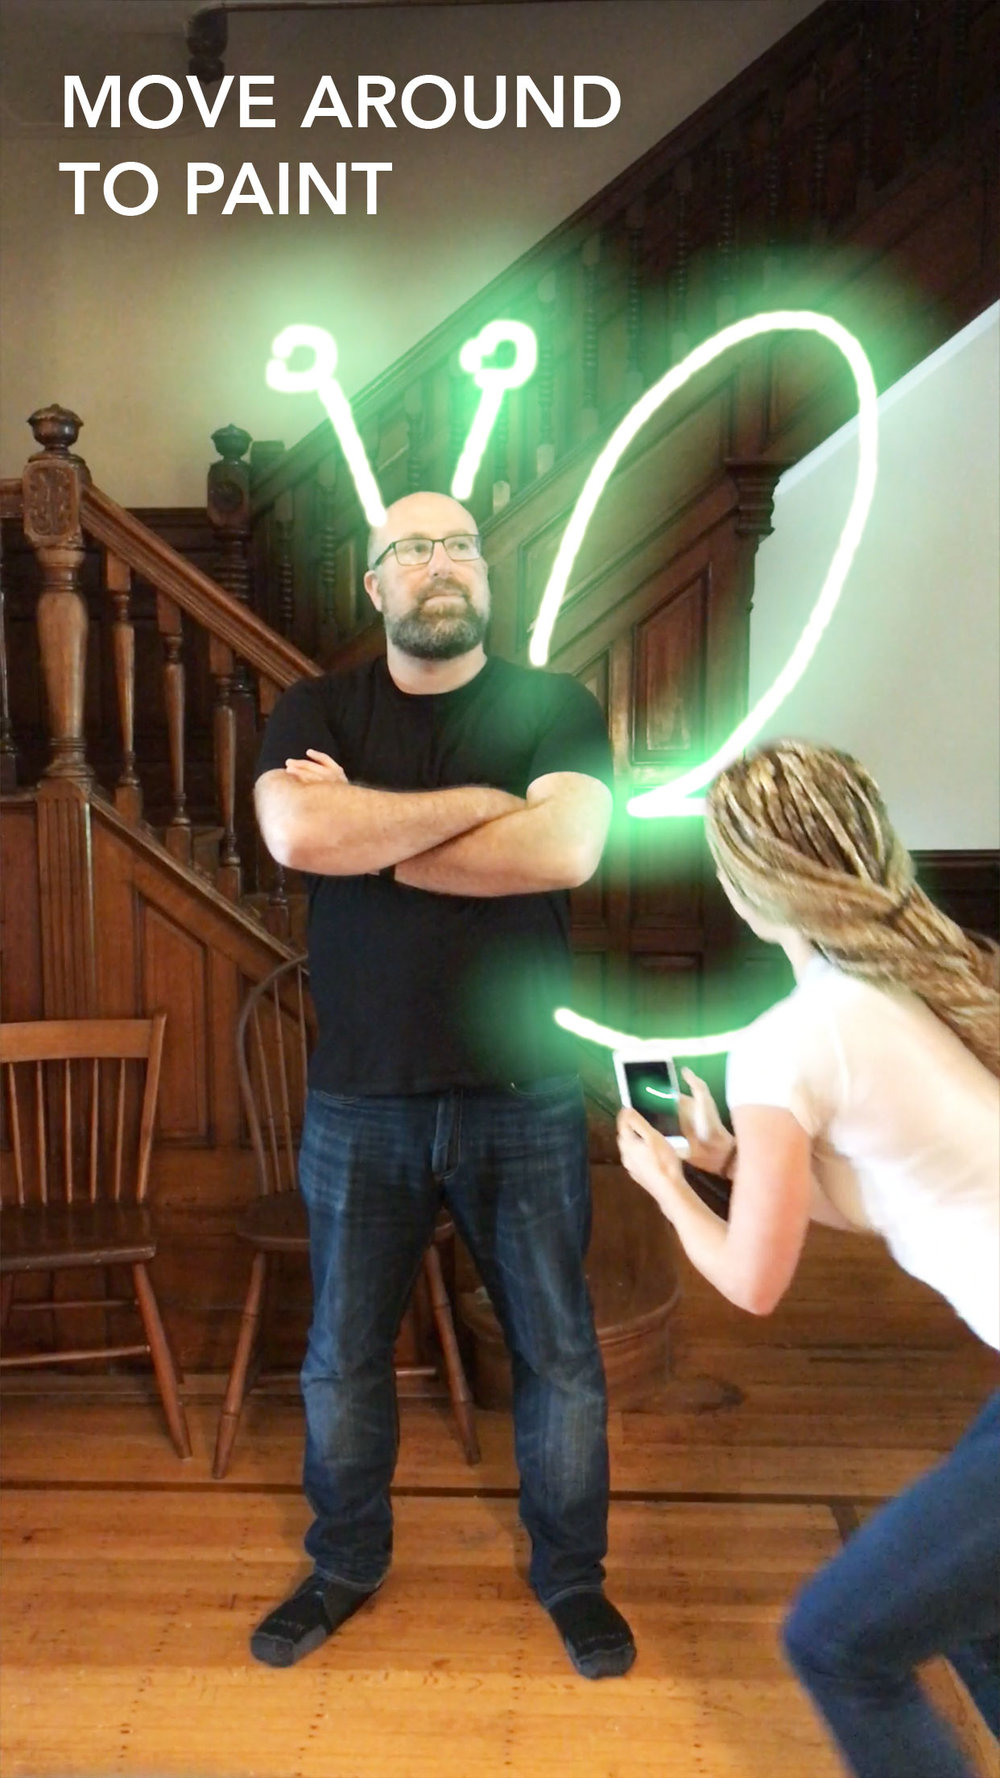 LightSpace App paint with light in AR